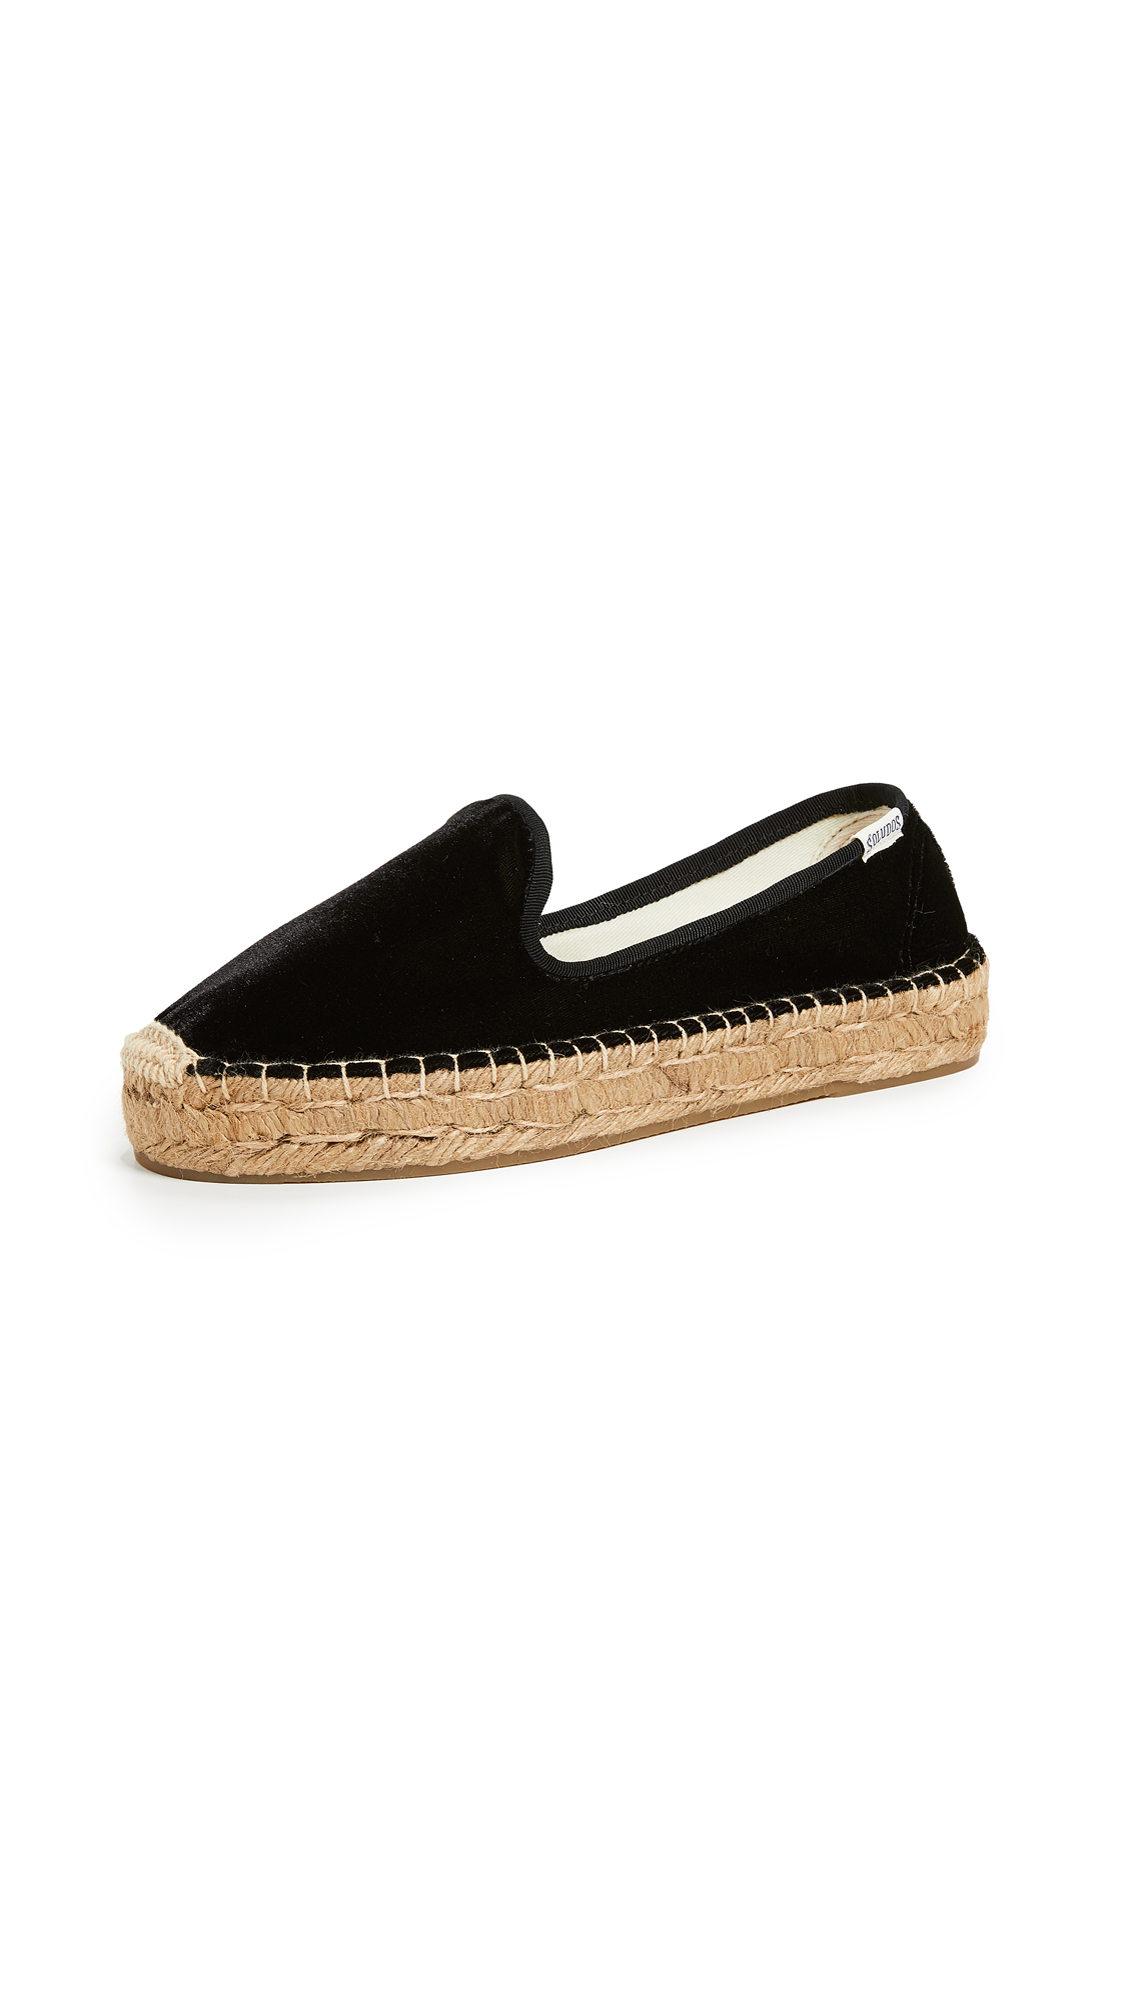 Soludos Velvet Platform Smoking Slippers - Black